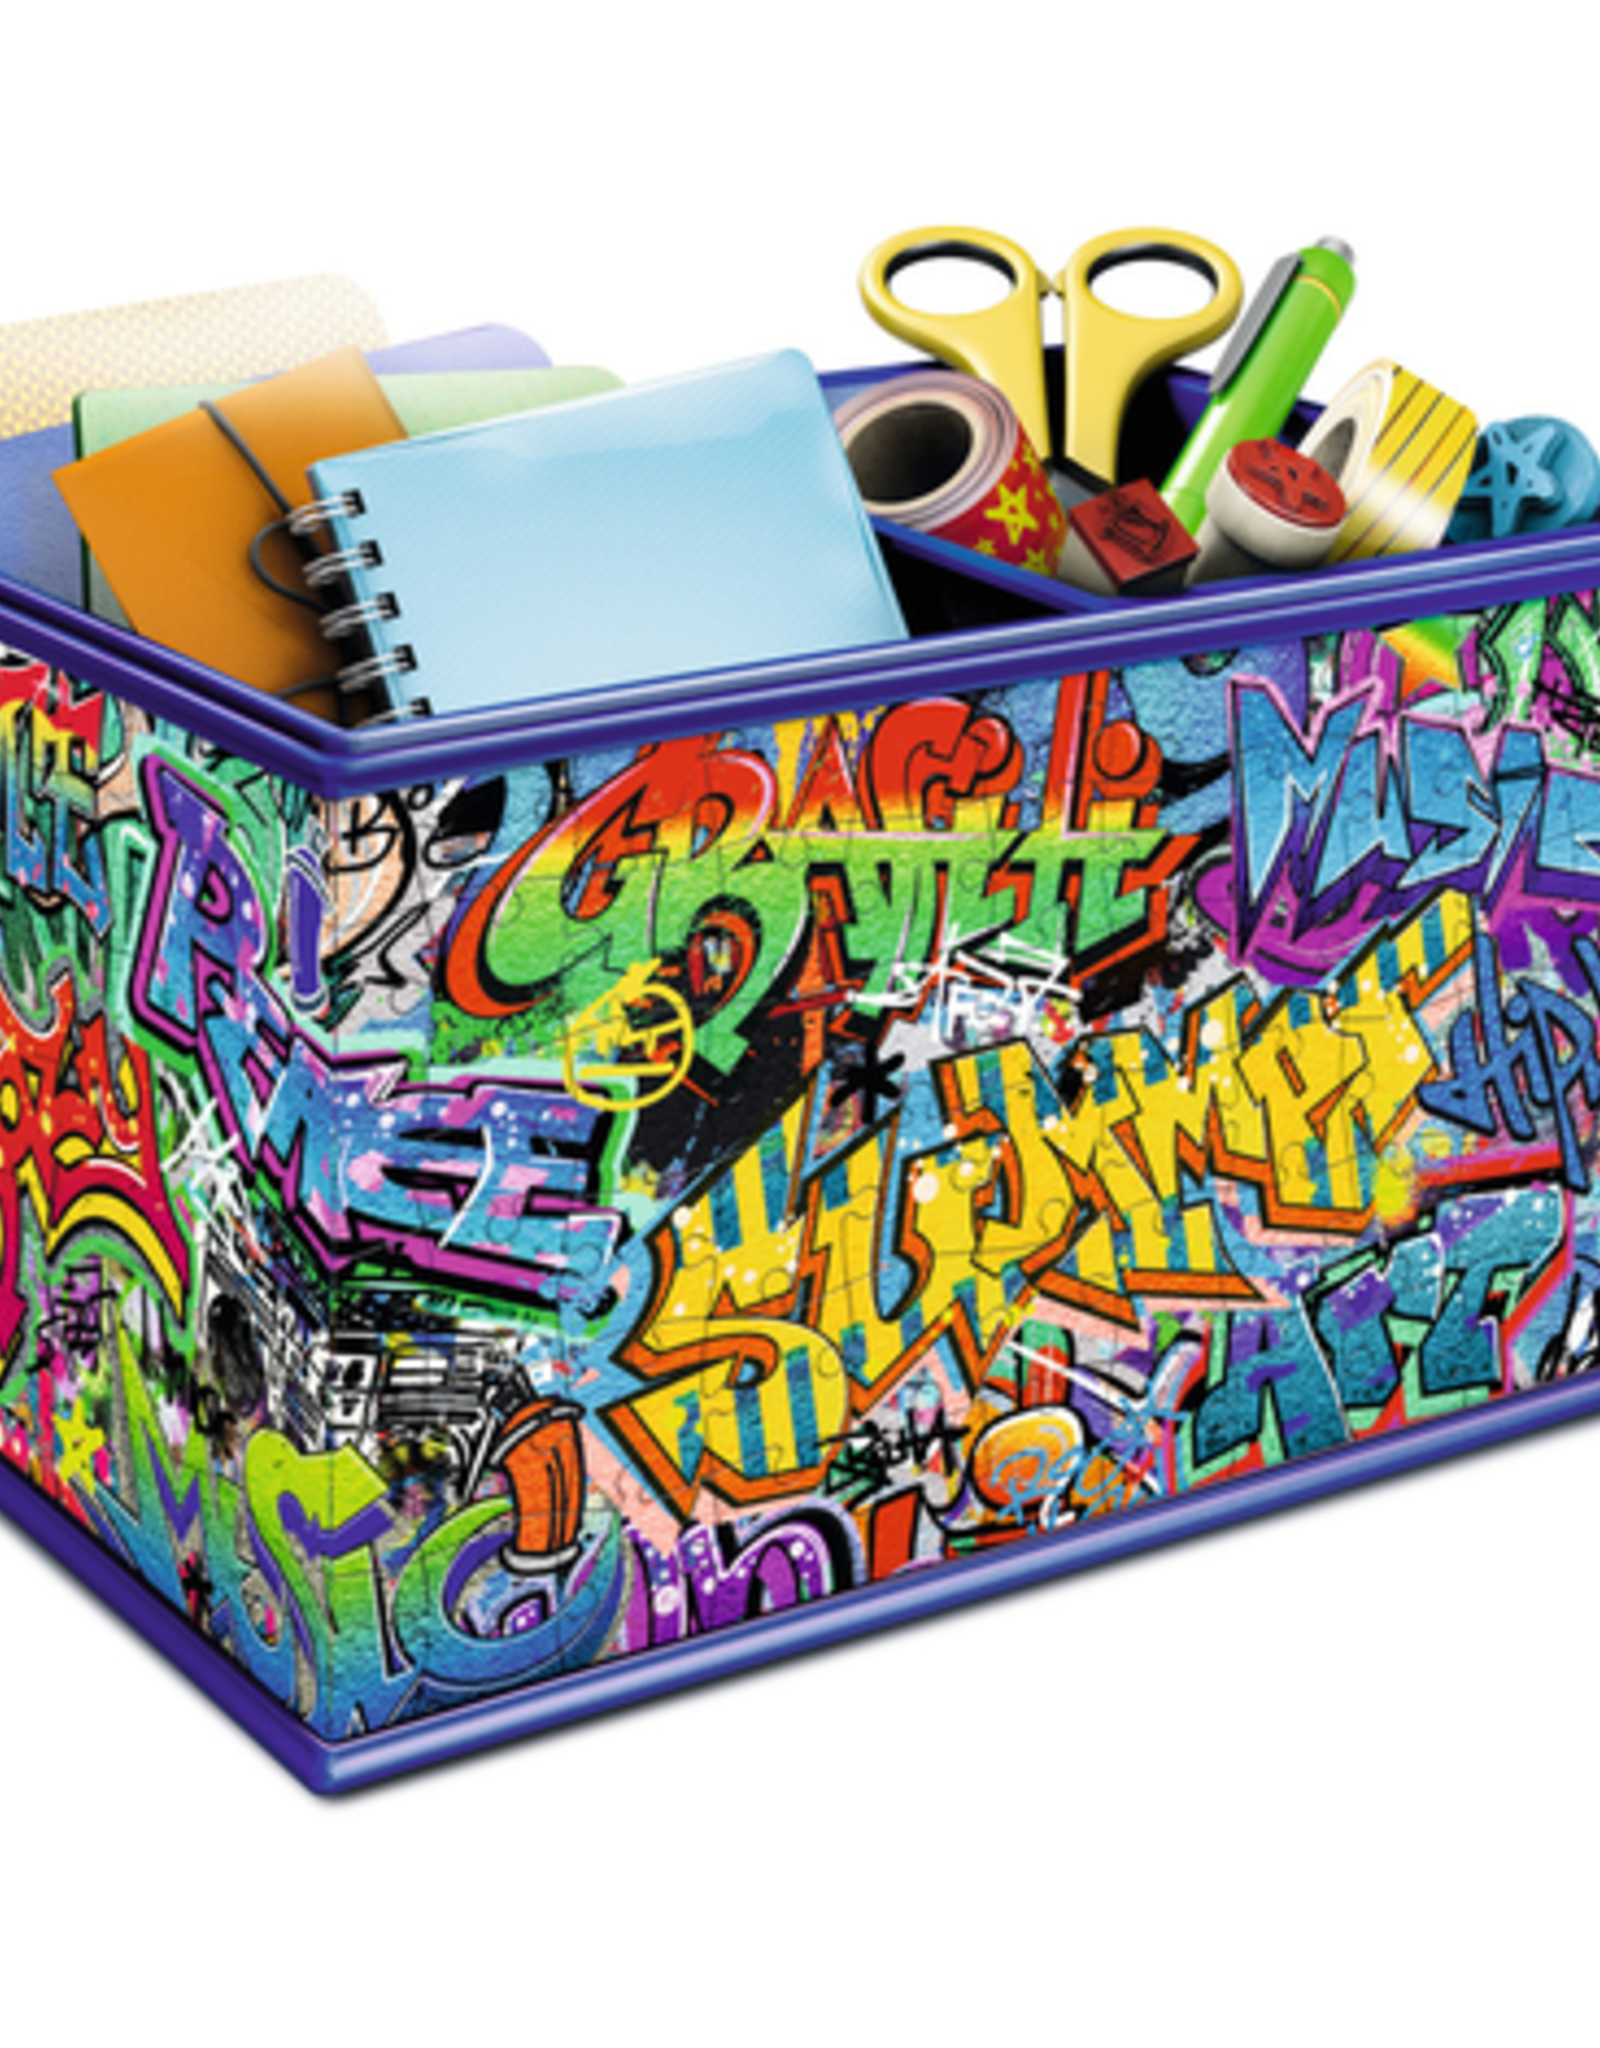 Ravensburger Graffiti Storage Box 3D (216pc)